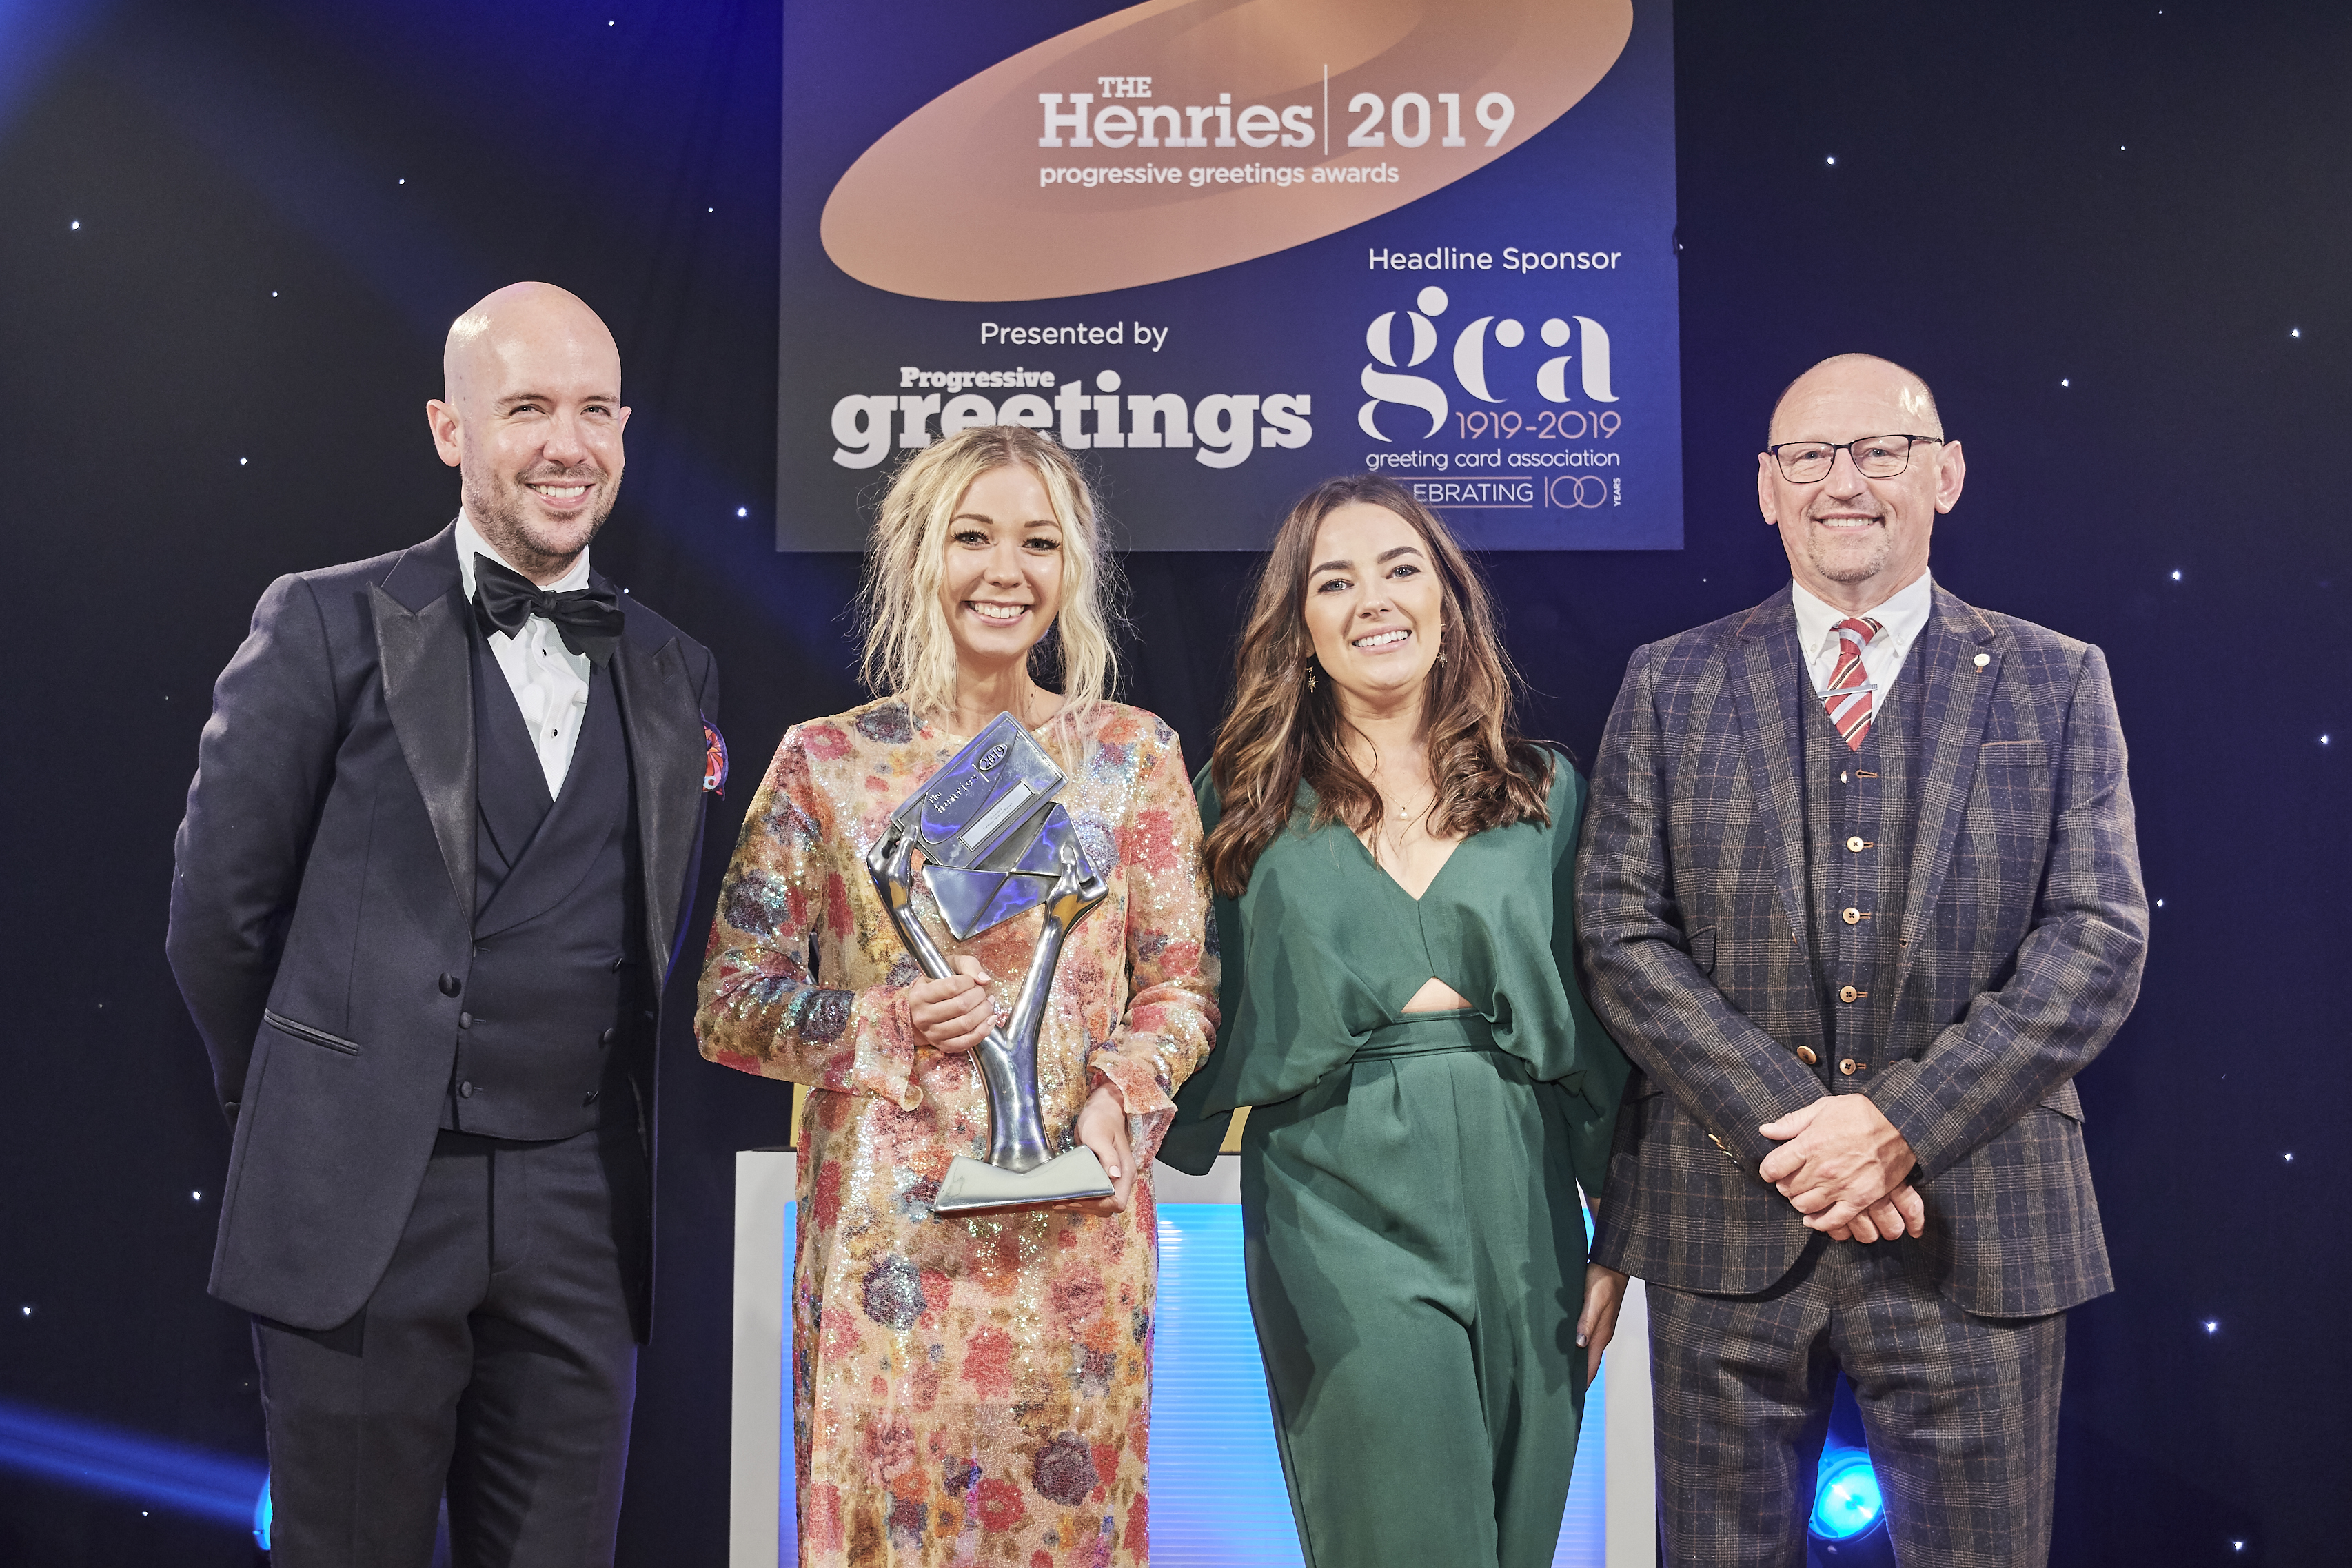 Above: Emily Coxshead, founder of the Happy News was all smiles as she collected the trophy with Sam Wilson, senior designer for Pigment that was presented to them by Skeet Print's director, John Skeet, sponsor of this award category.